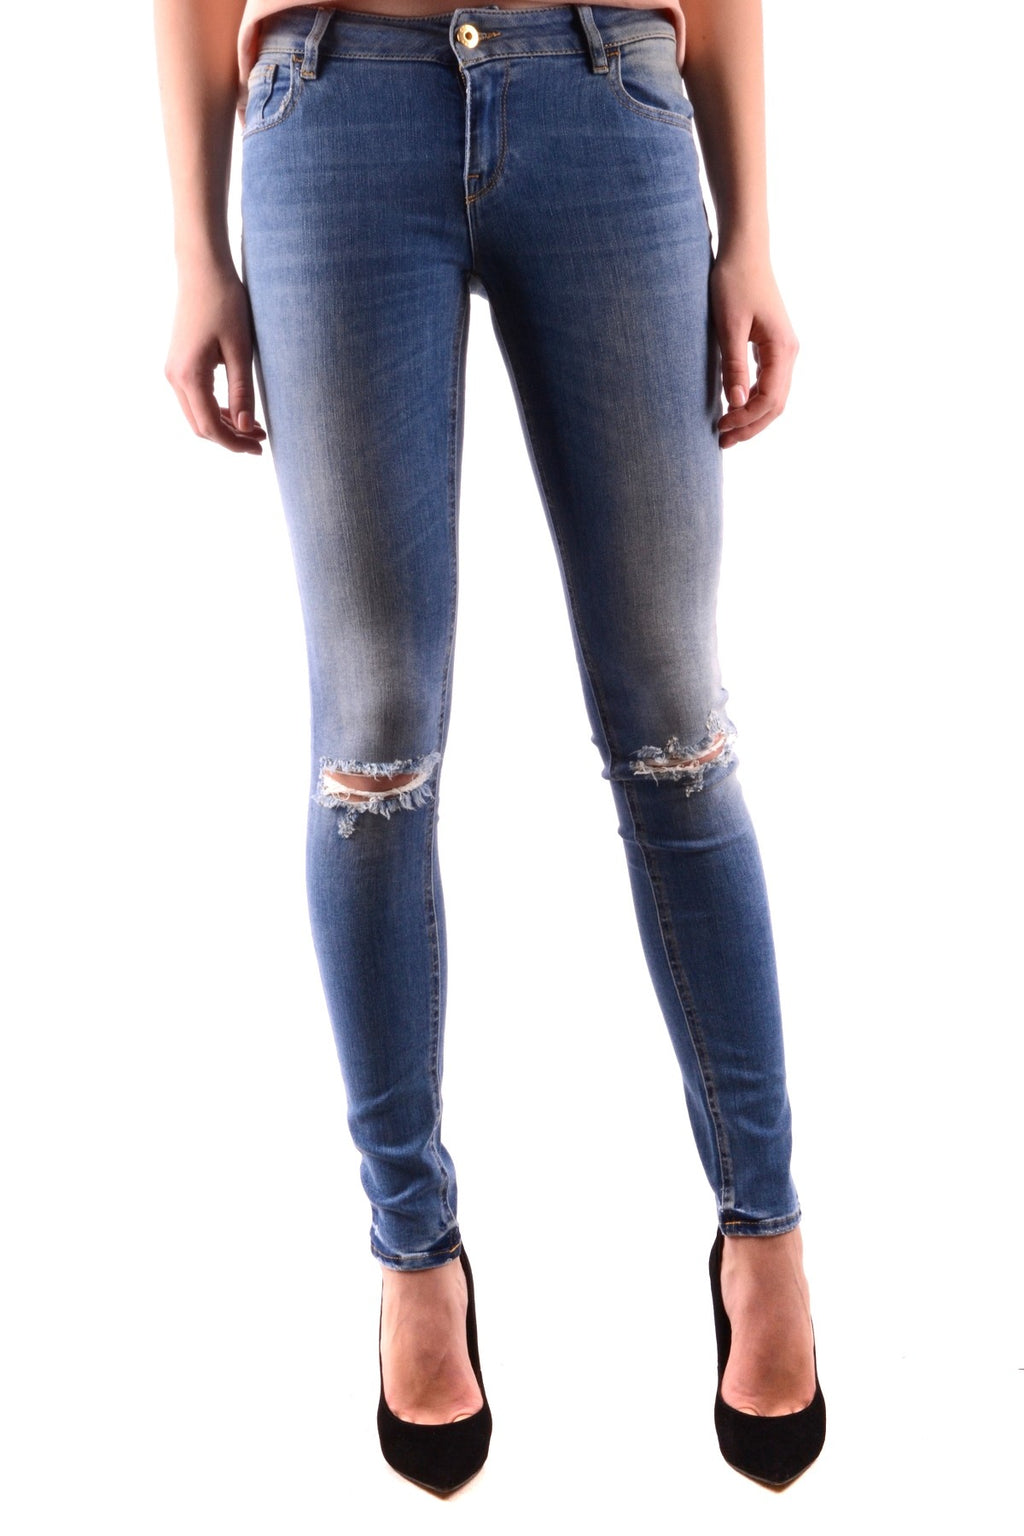 Cycle Designer Woman Jeans